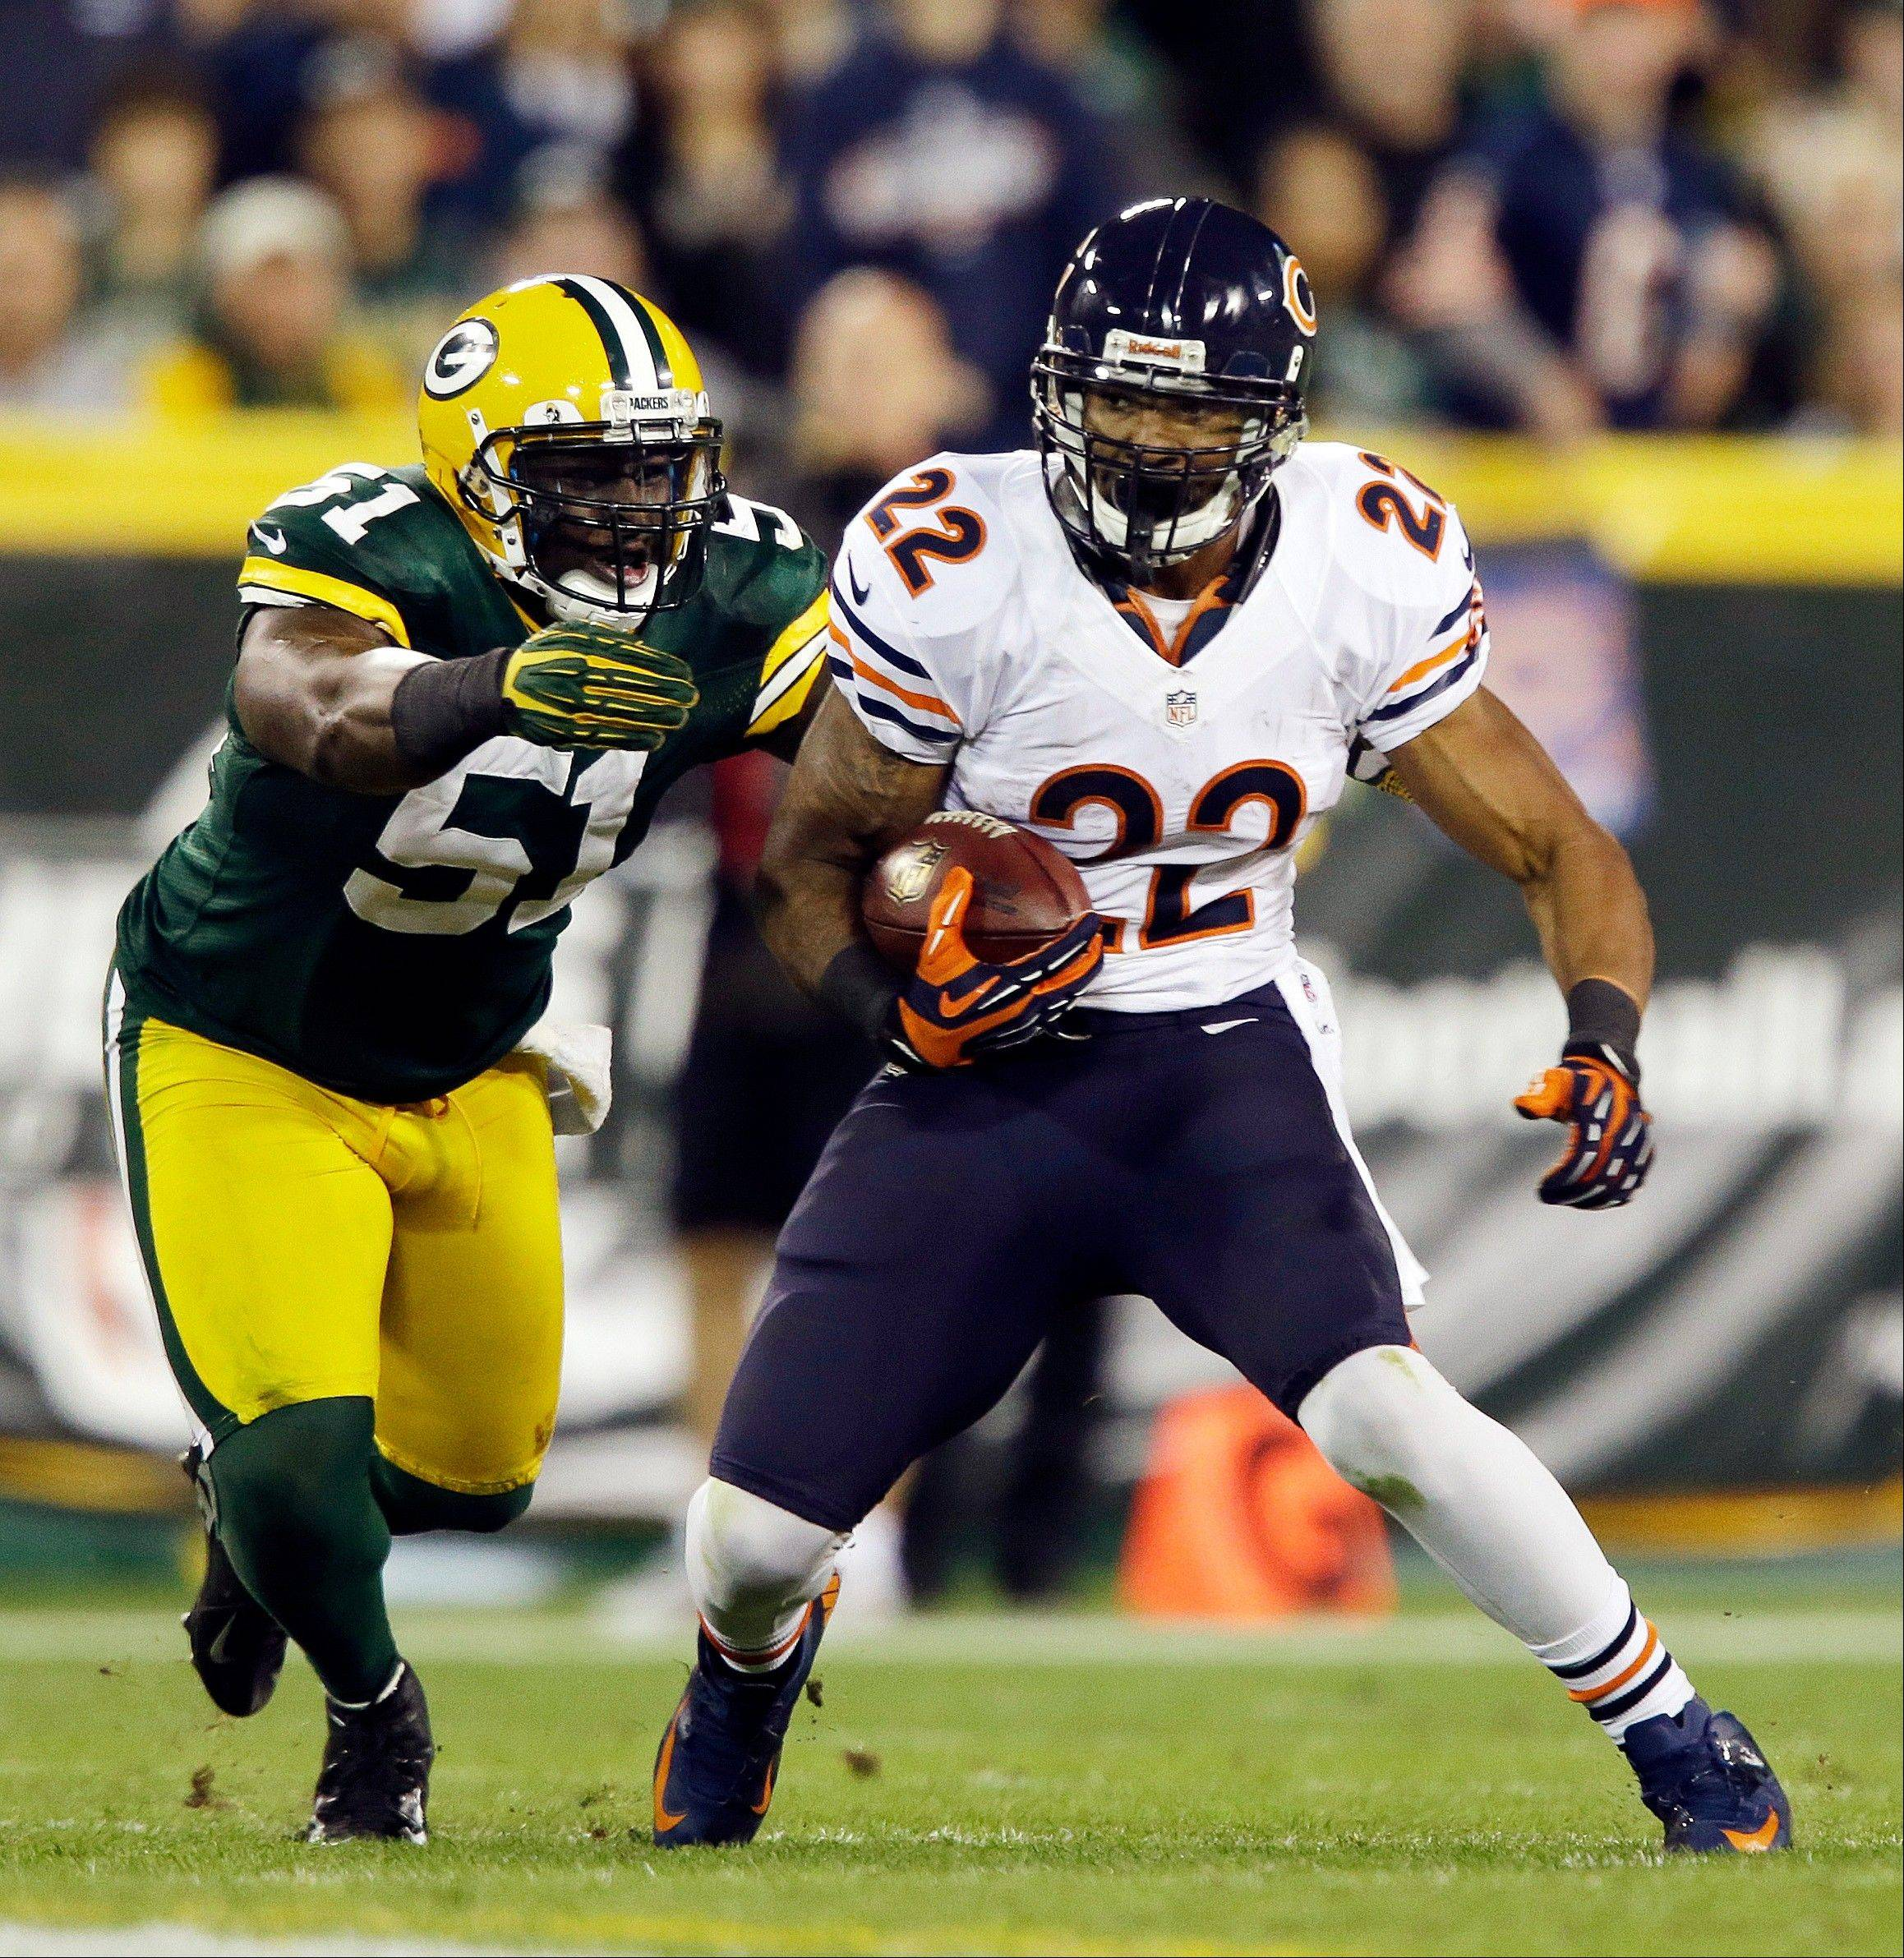 Chicago Bears' Matt Forte tries to break away from Green Bay Packers' D.J. Smith during the second half.